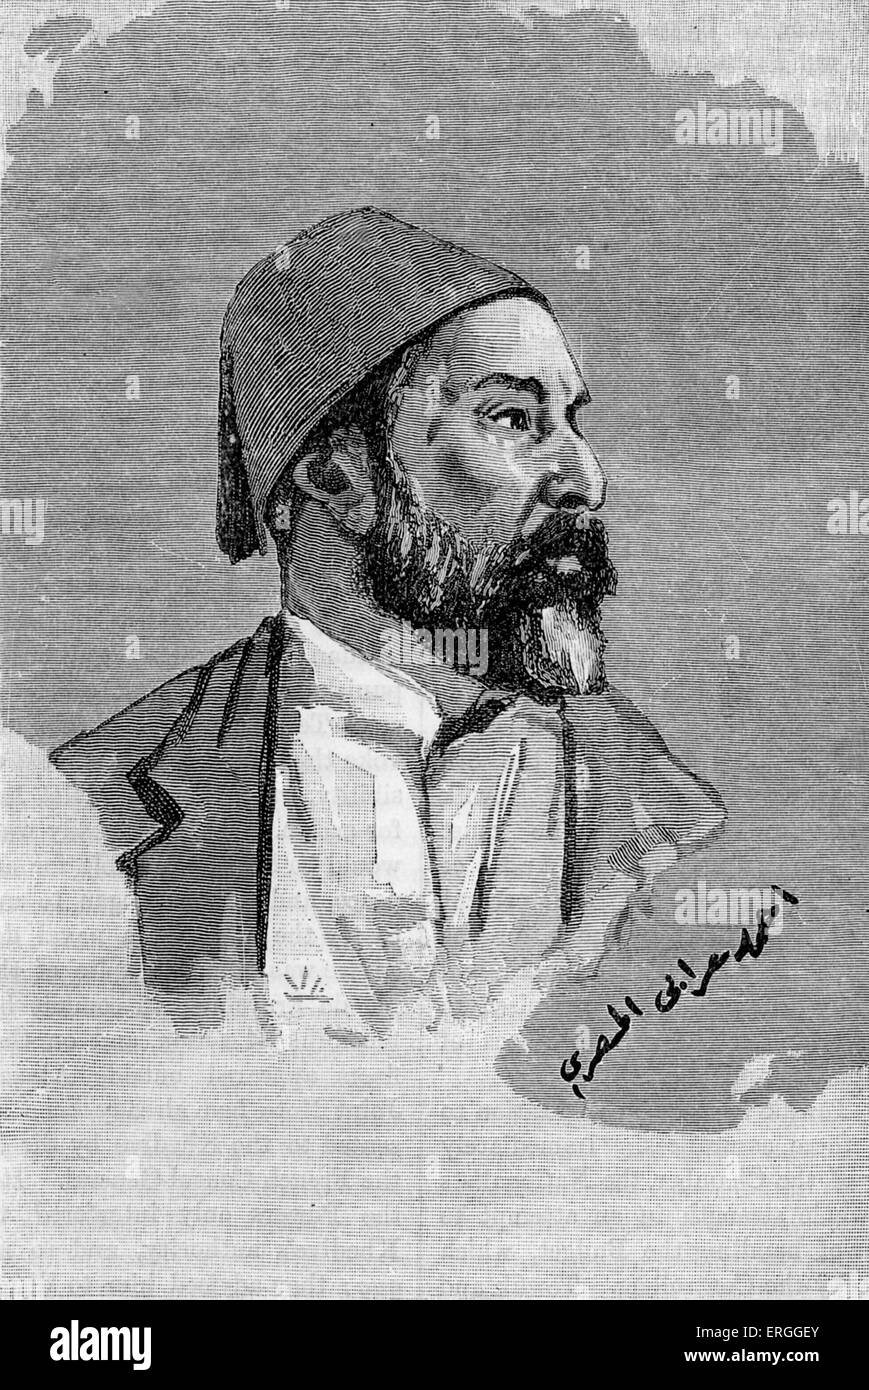 Ahmed Orabi - portrait. Egyptian army general, and nationalist. Led a revolt in 1879 against Tewfik Pasha, the Khedive - Stock Image